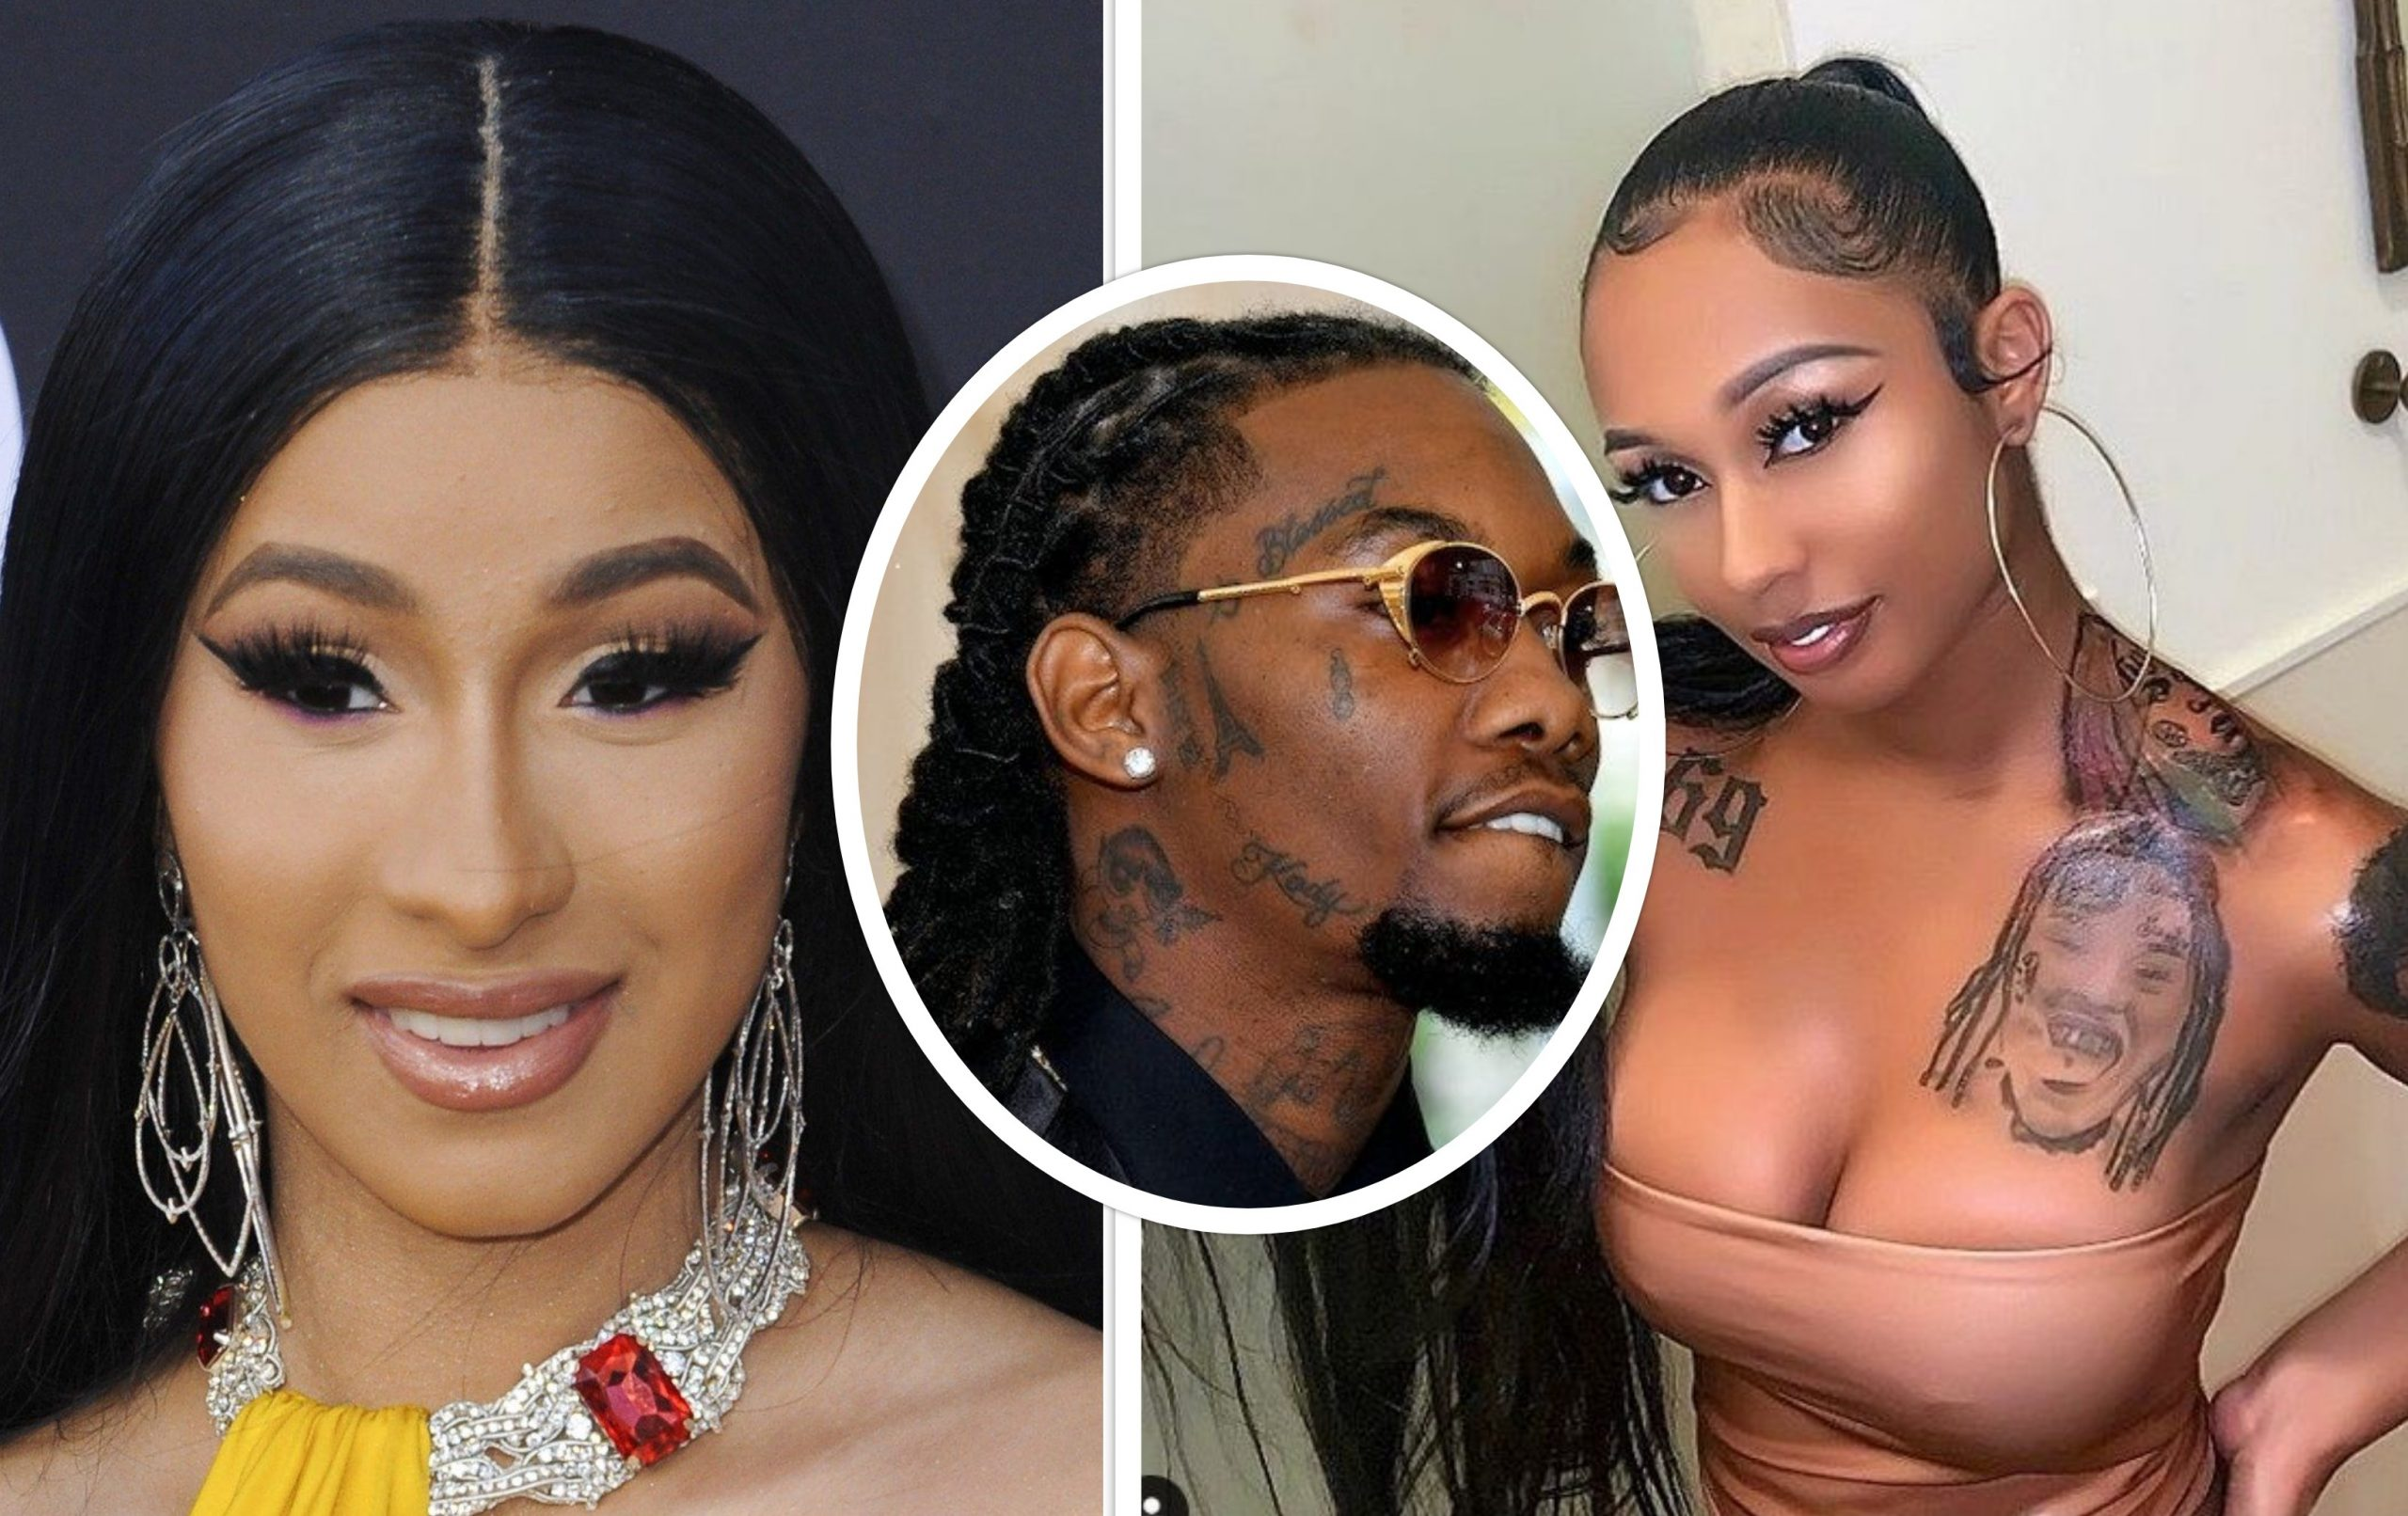 Cardi B Responds to Offset Cheating Rumors Amid Instagram Hack